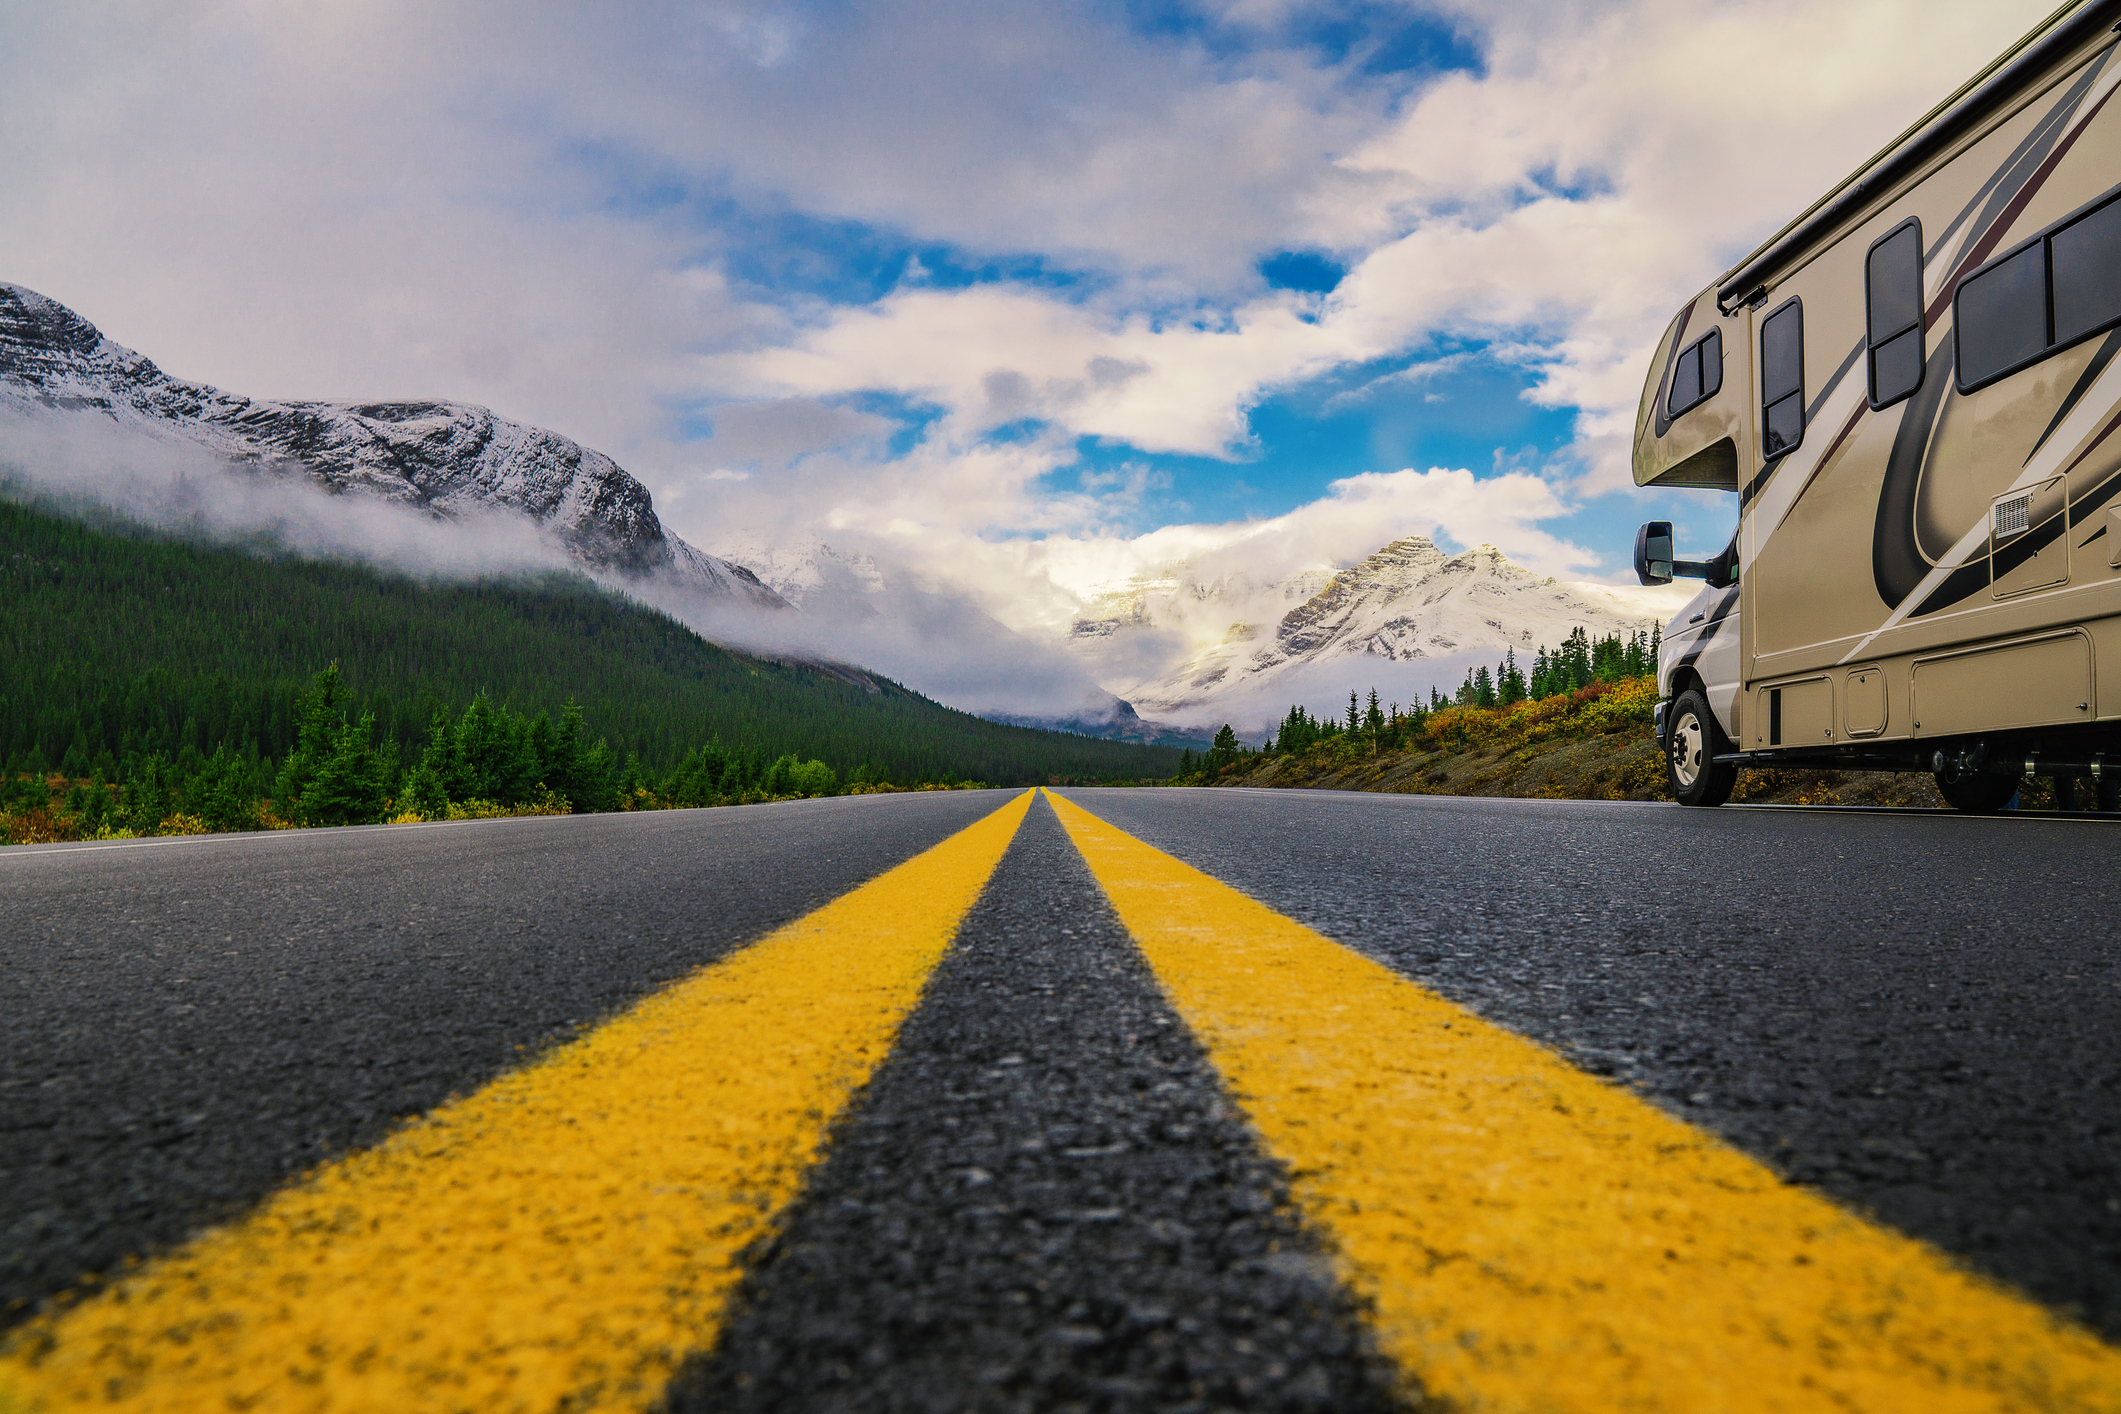 A motorhome on a highway with majestic mountains in the background.